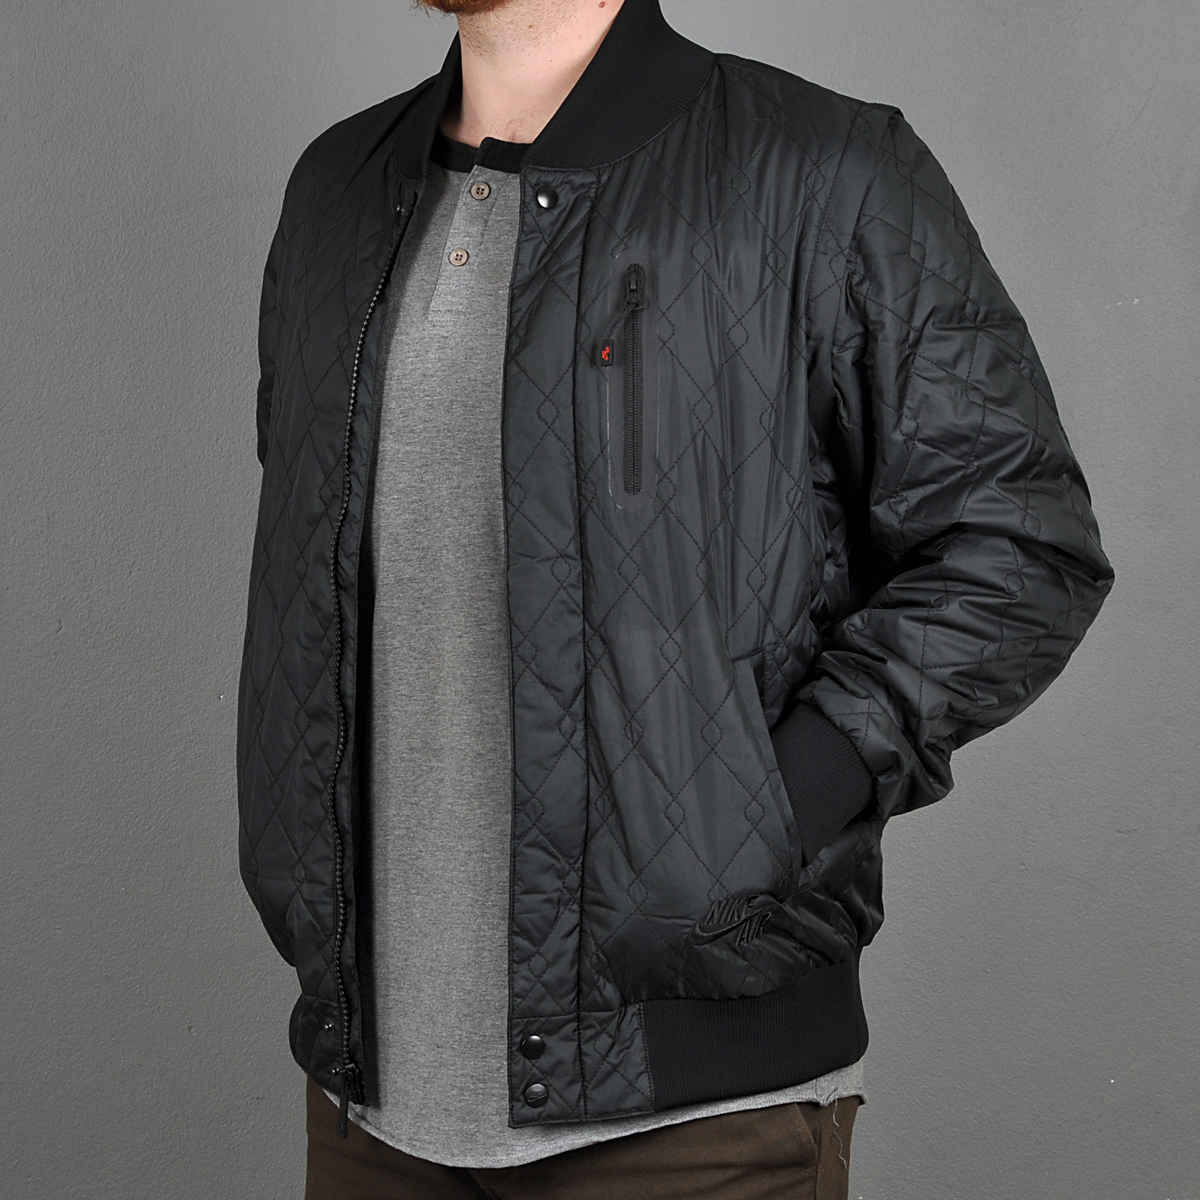 6b309634e4e4 Mens Off77Discounts Nike Jacket Onlinegt  Quilted SUzVqMp